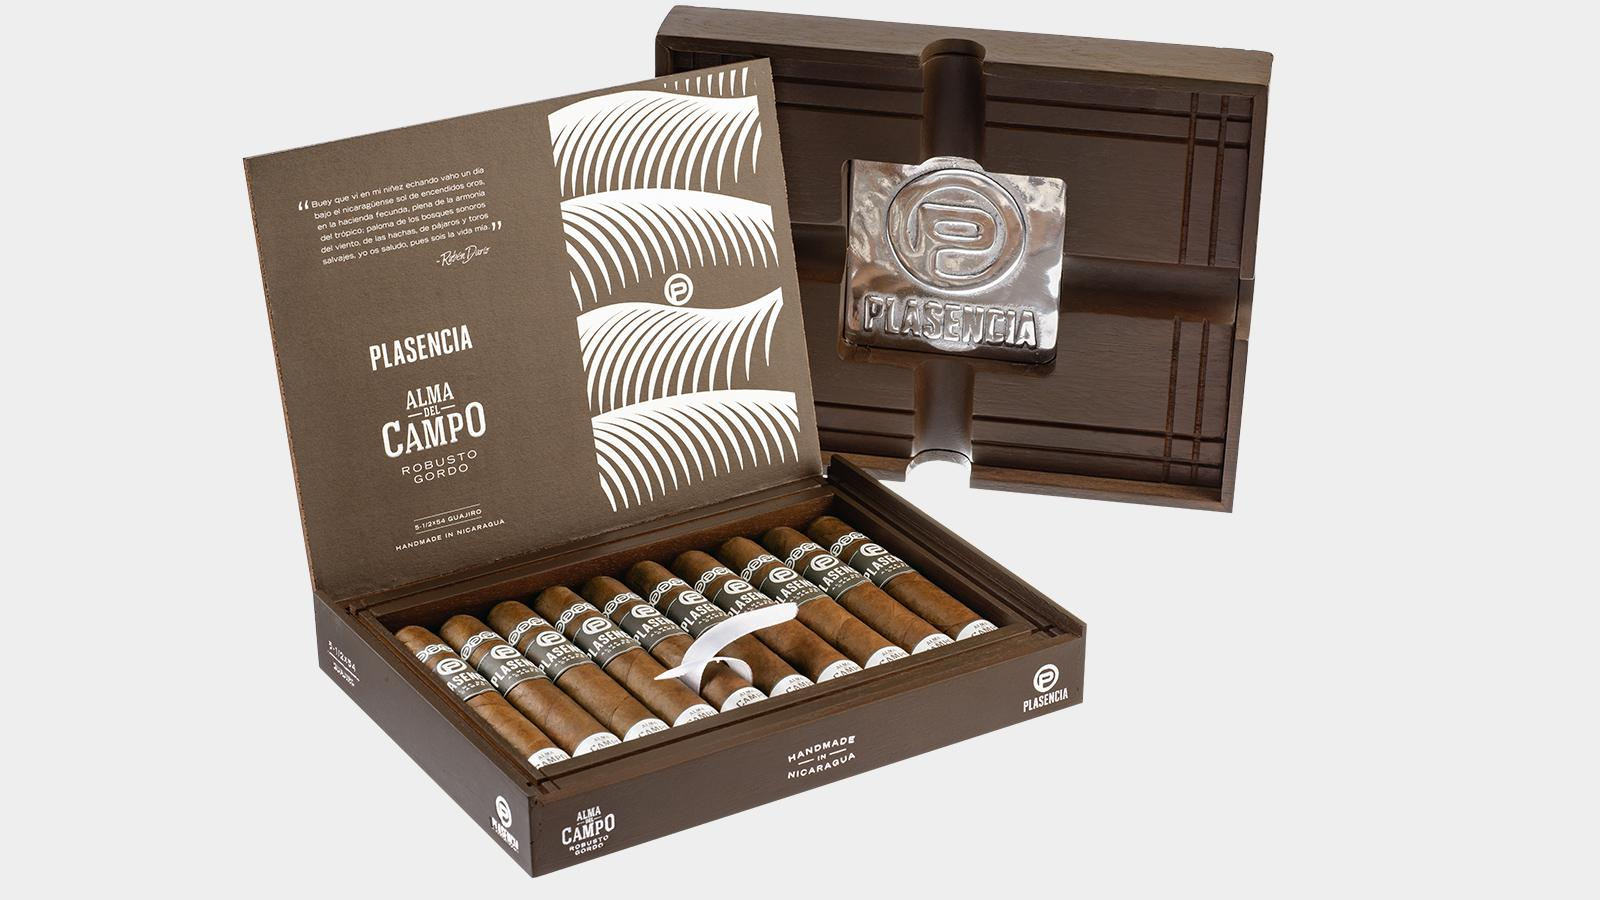 Alma del Campo is the second brand in what Plasencia is intending to be a five-part series.